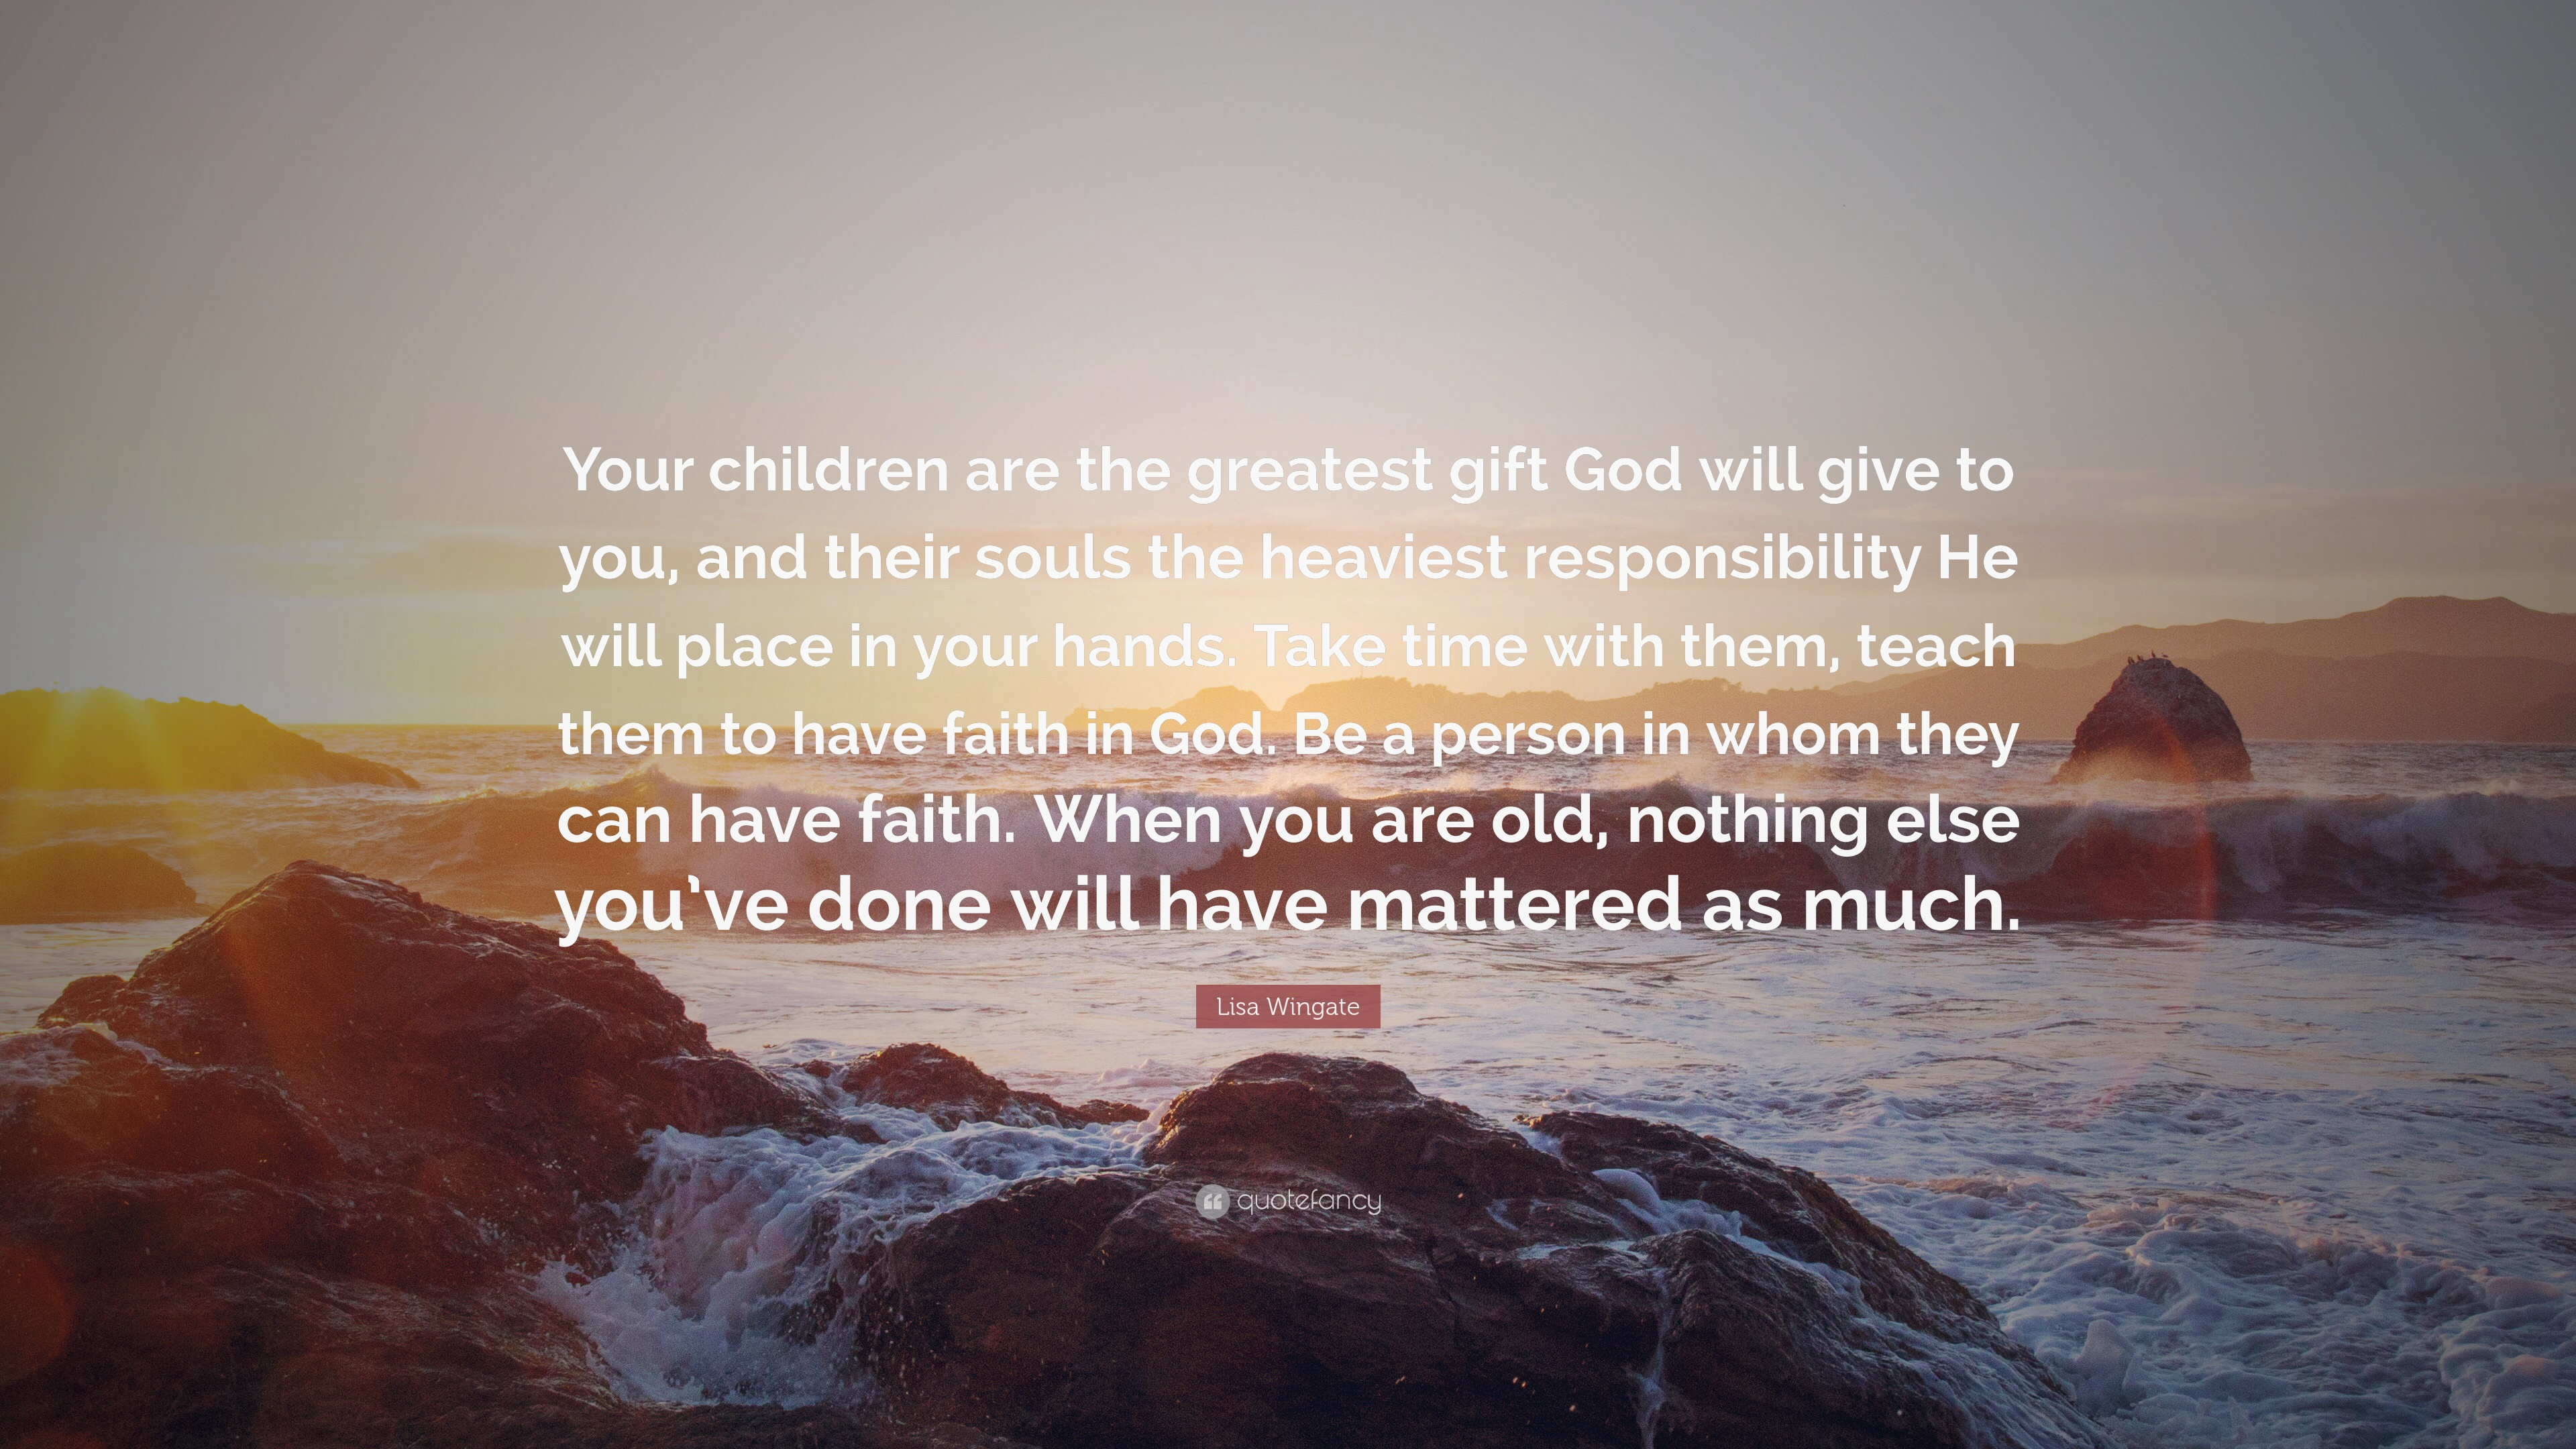 the greatest gift The greatest gift a leader can provide is recognizing and inspiring hidden capacities in others the greatest gift a leader can provide is recognizing and inspiring hidden capacities in others.